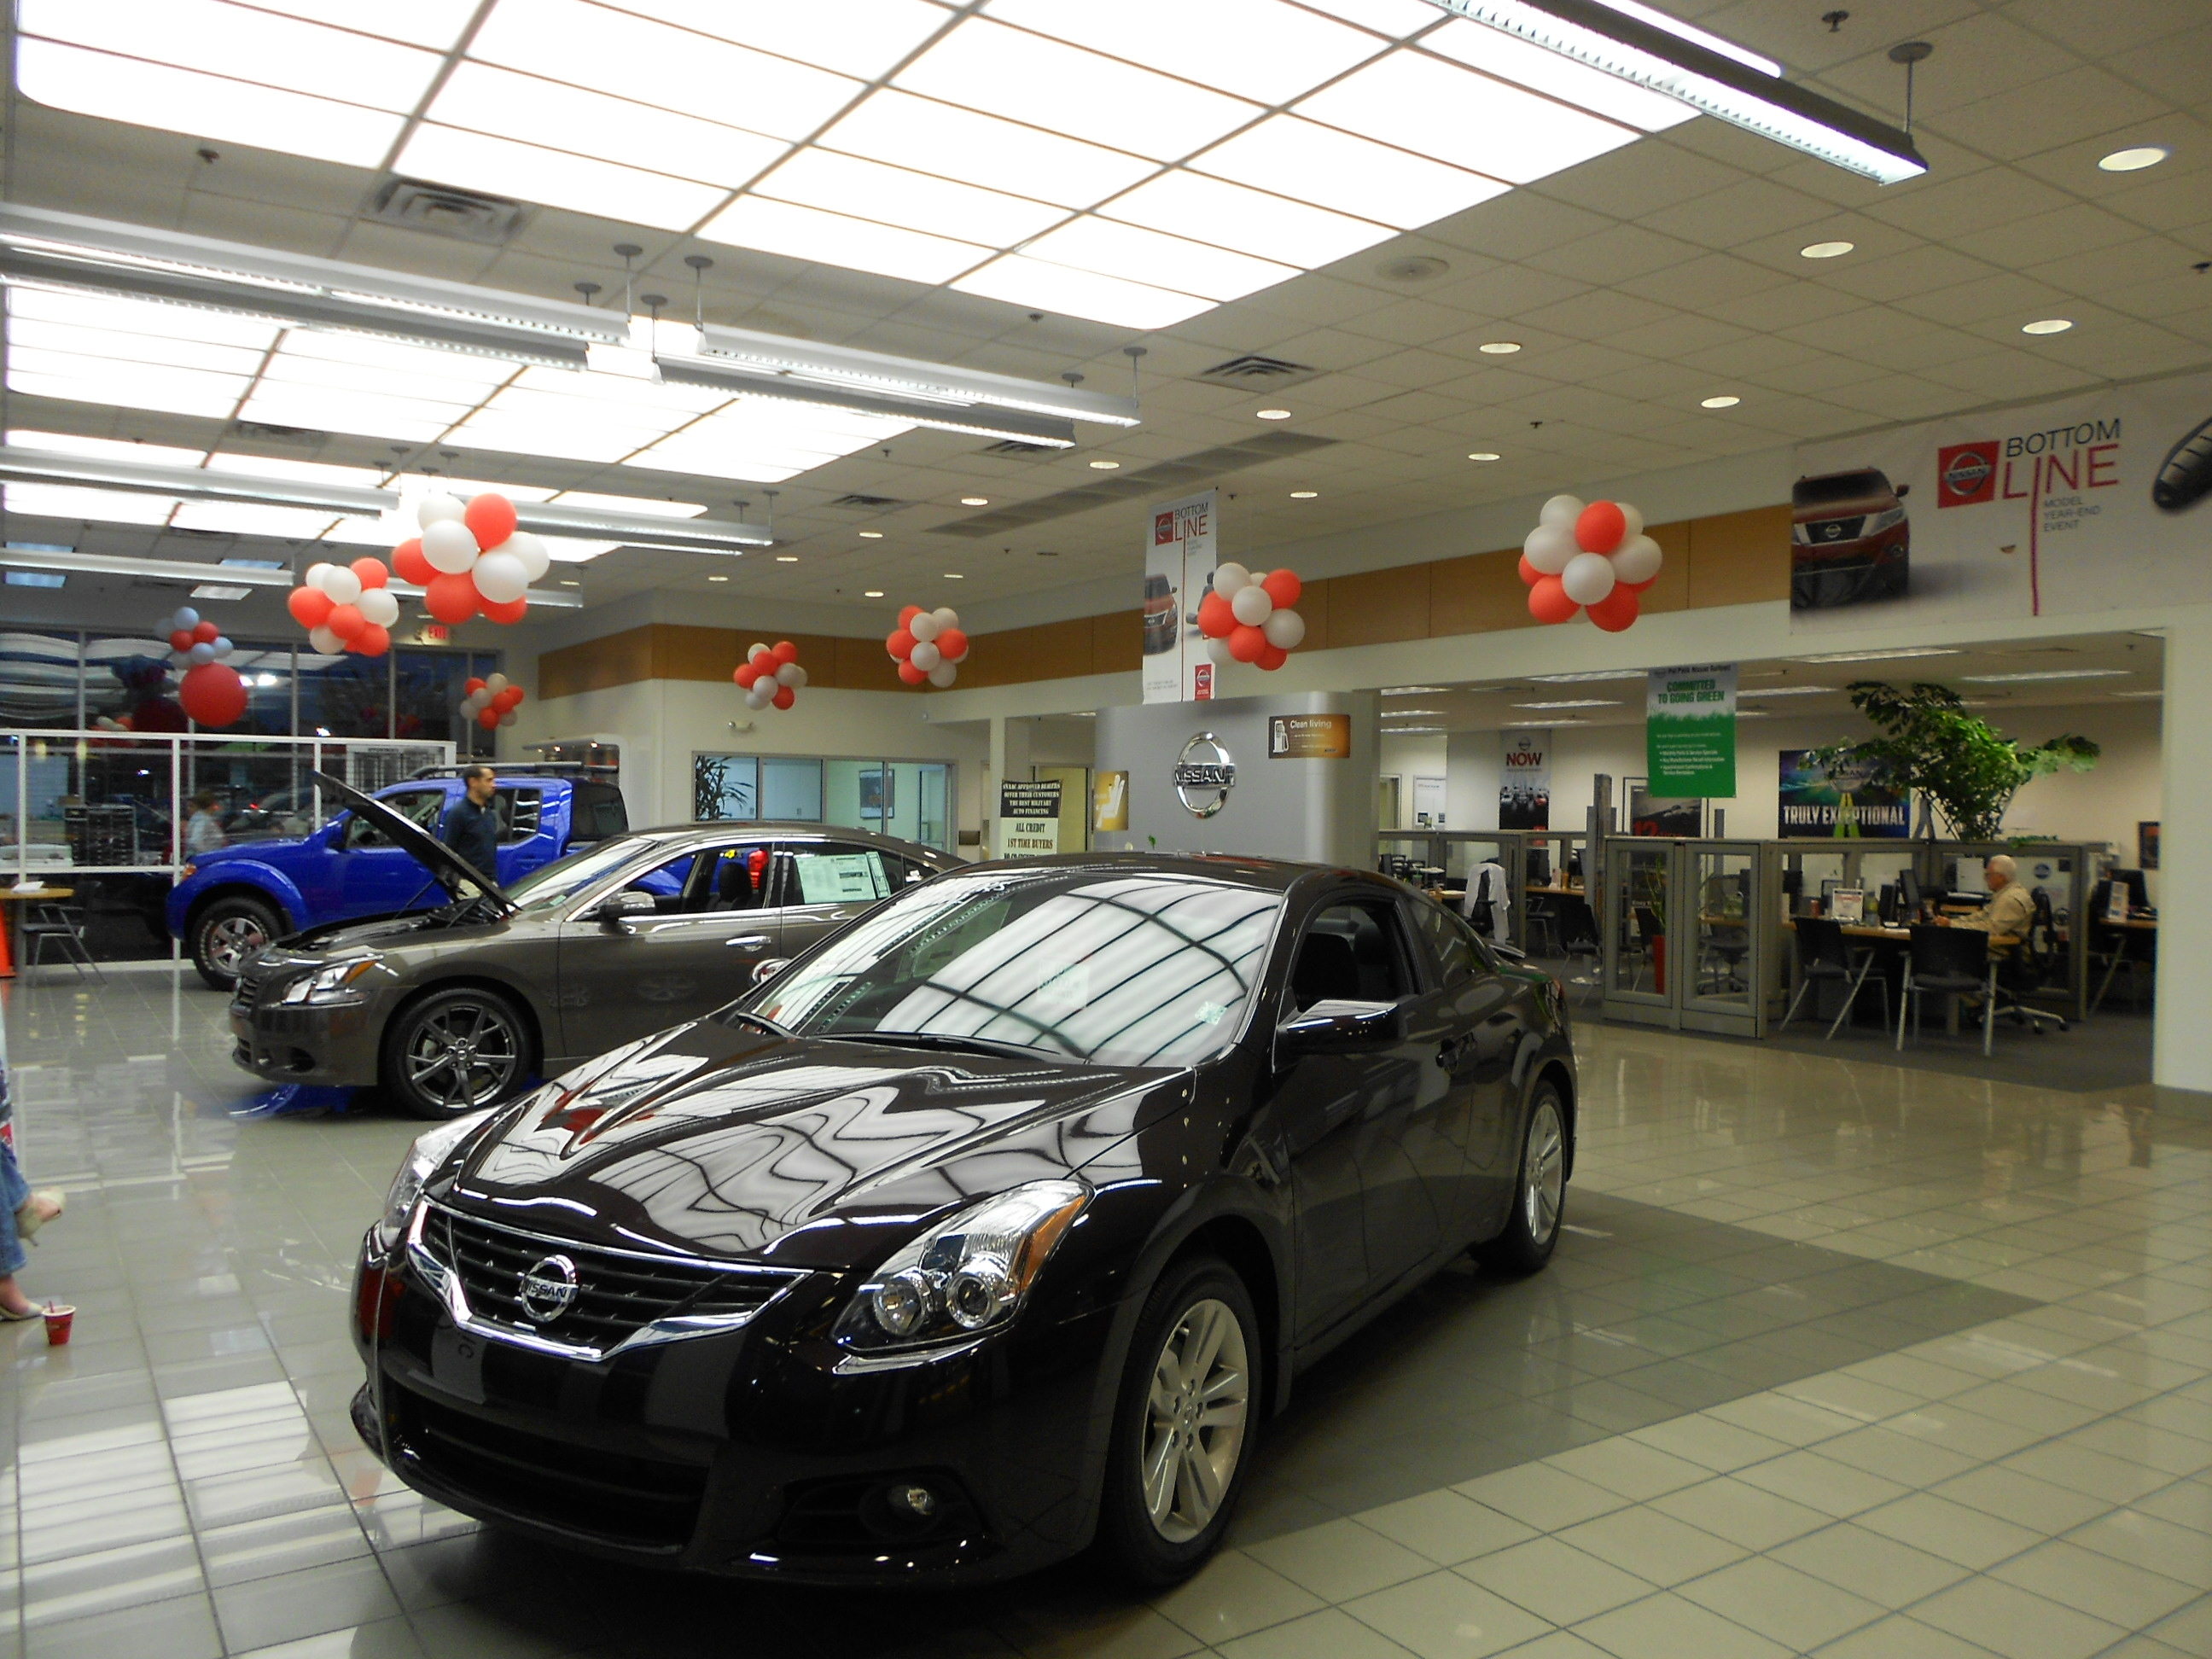 Pat Peck Nissan >> Pat Peck Nissan - Gulfport at 9480 US Highway 49, Gulfport, MS on Fave